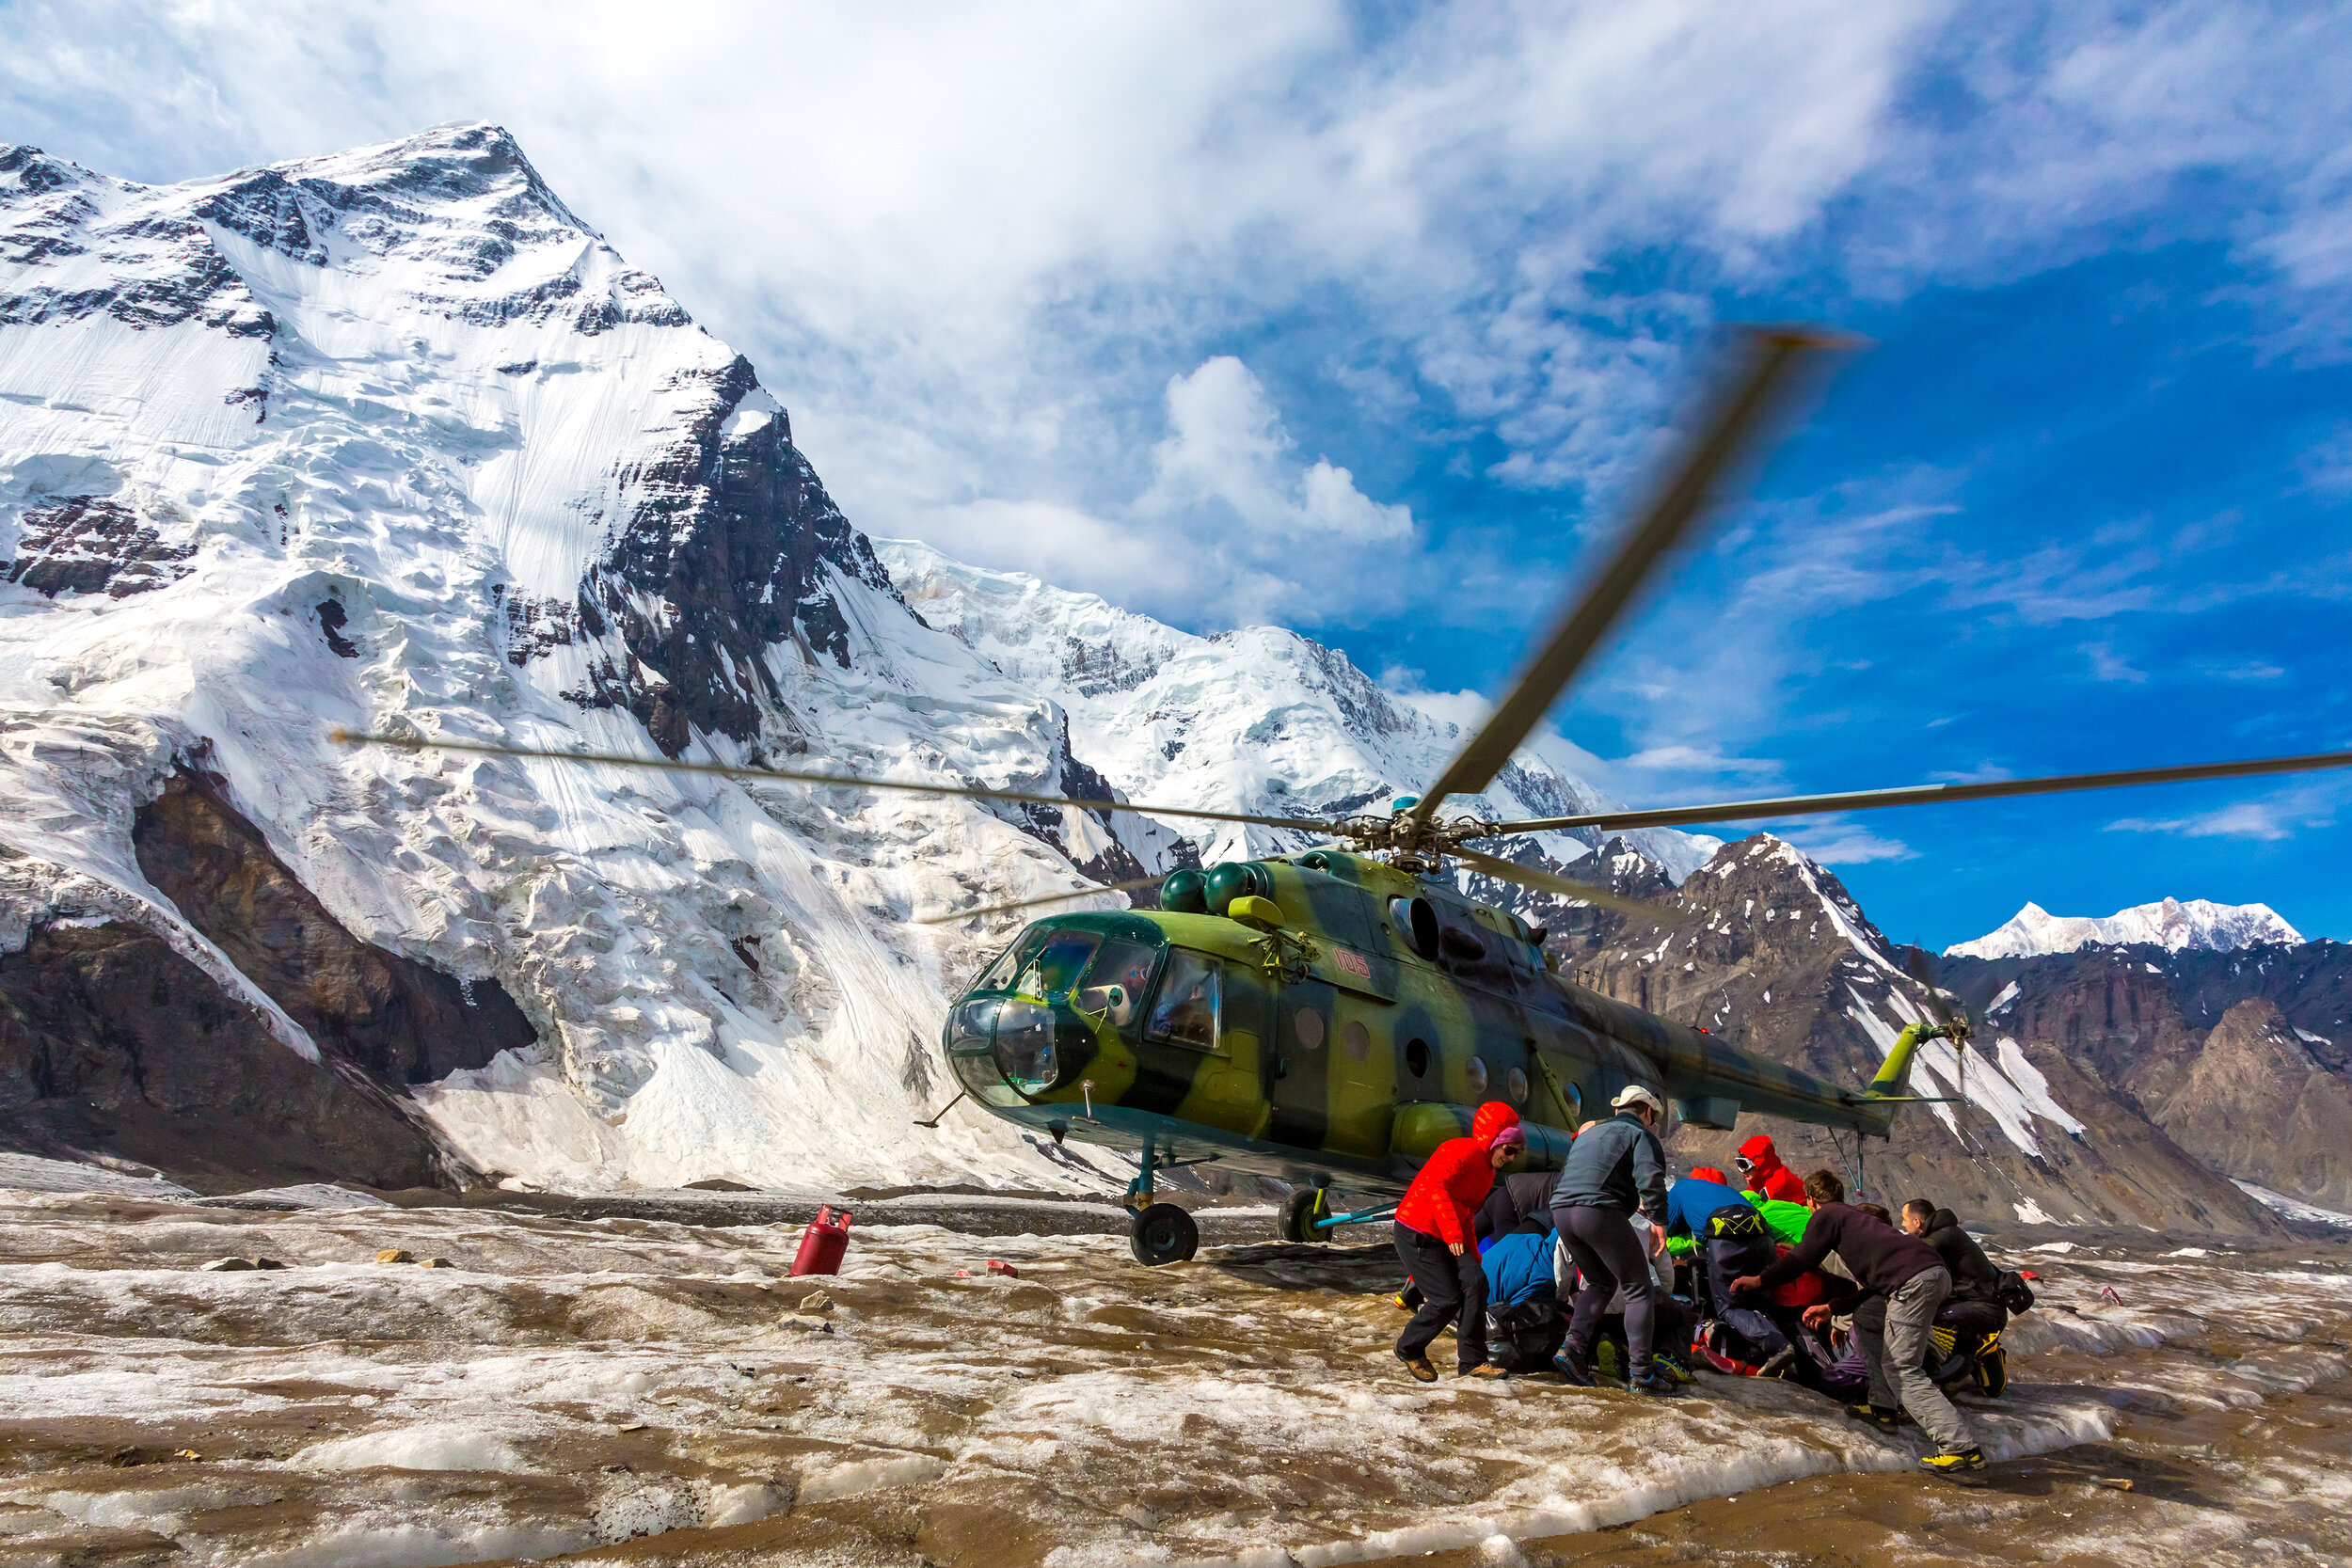 Helicopter Taking Off Ice Field of Massive Glacier and People Holding Luggage